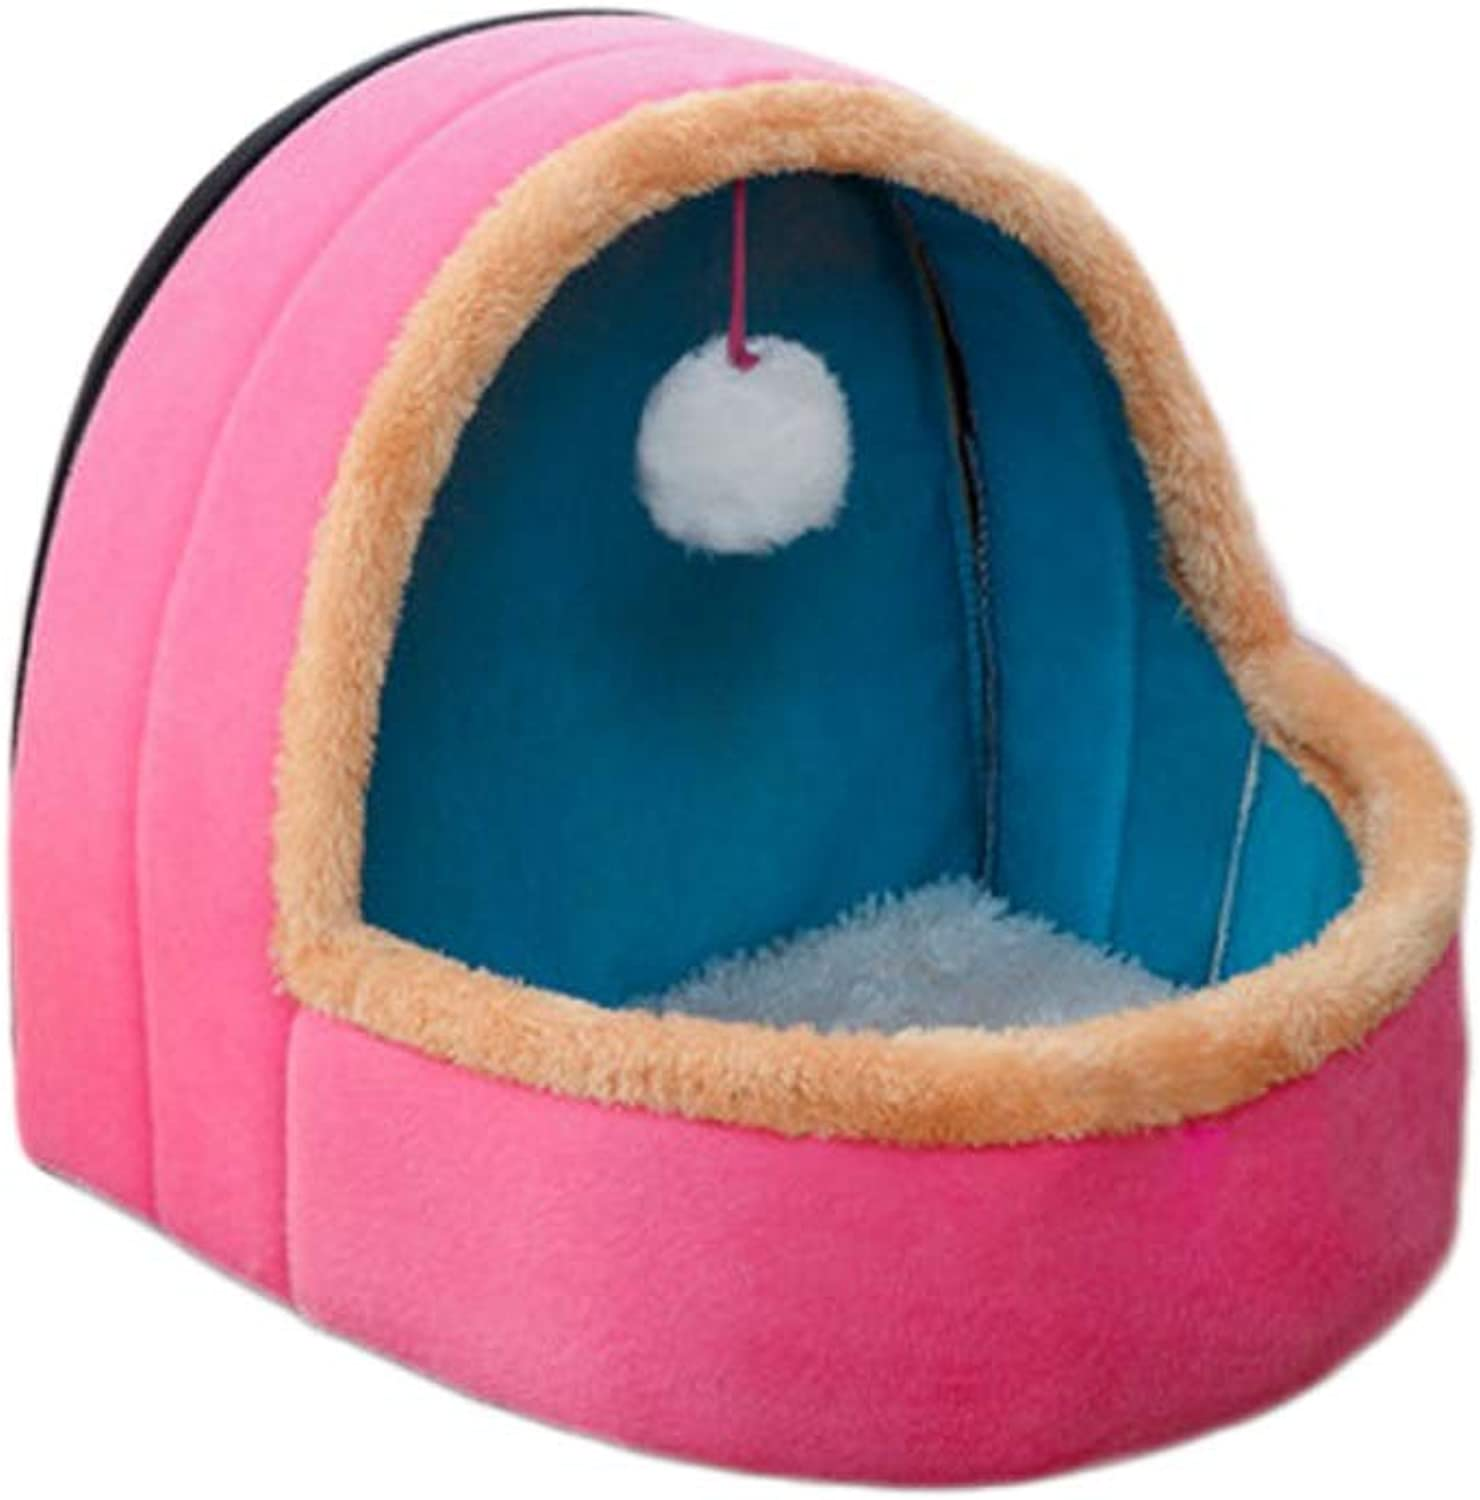 Kennel, Removable Washable Four Seasons Small Dog Cat Litter Winter House Warm Pet Nest Bed Room Three Sizes Optional (color   Pink, Size   S)